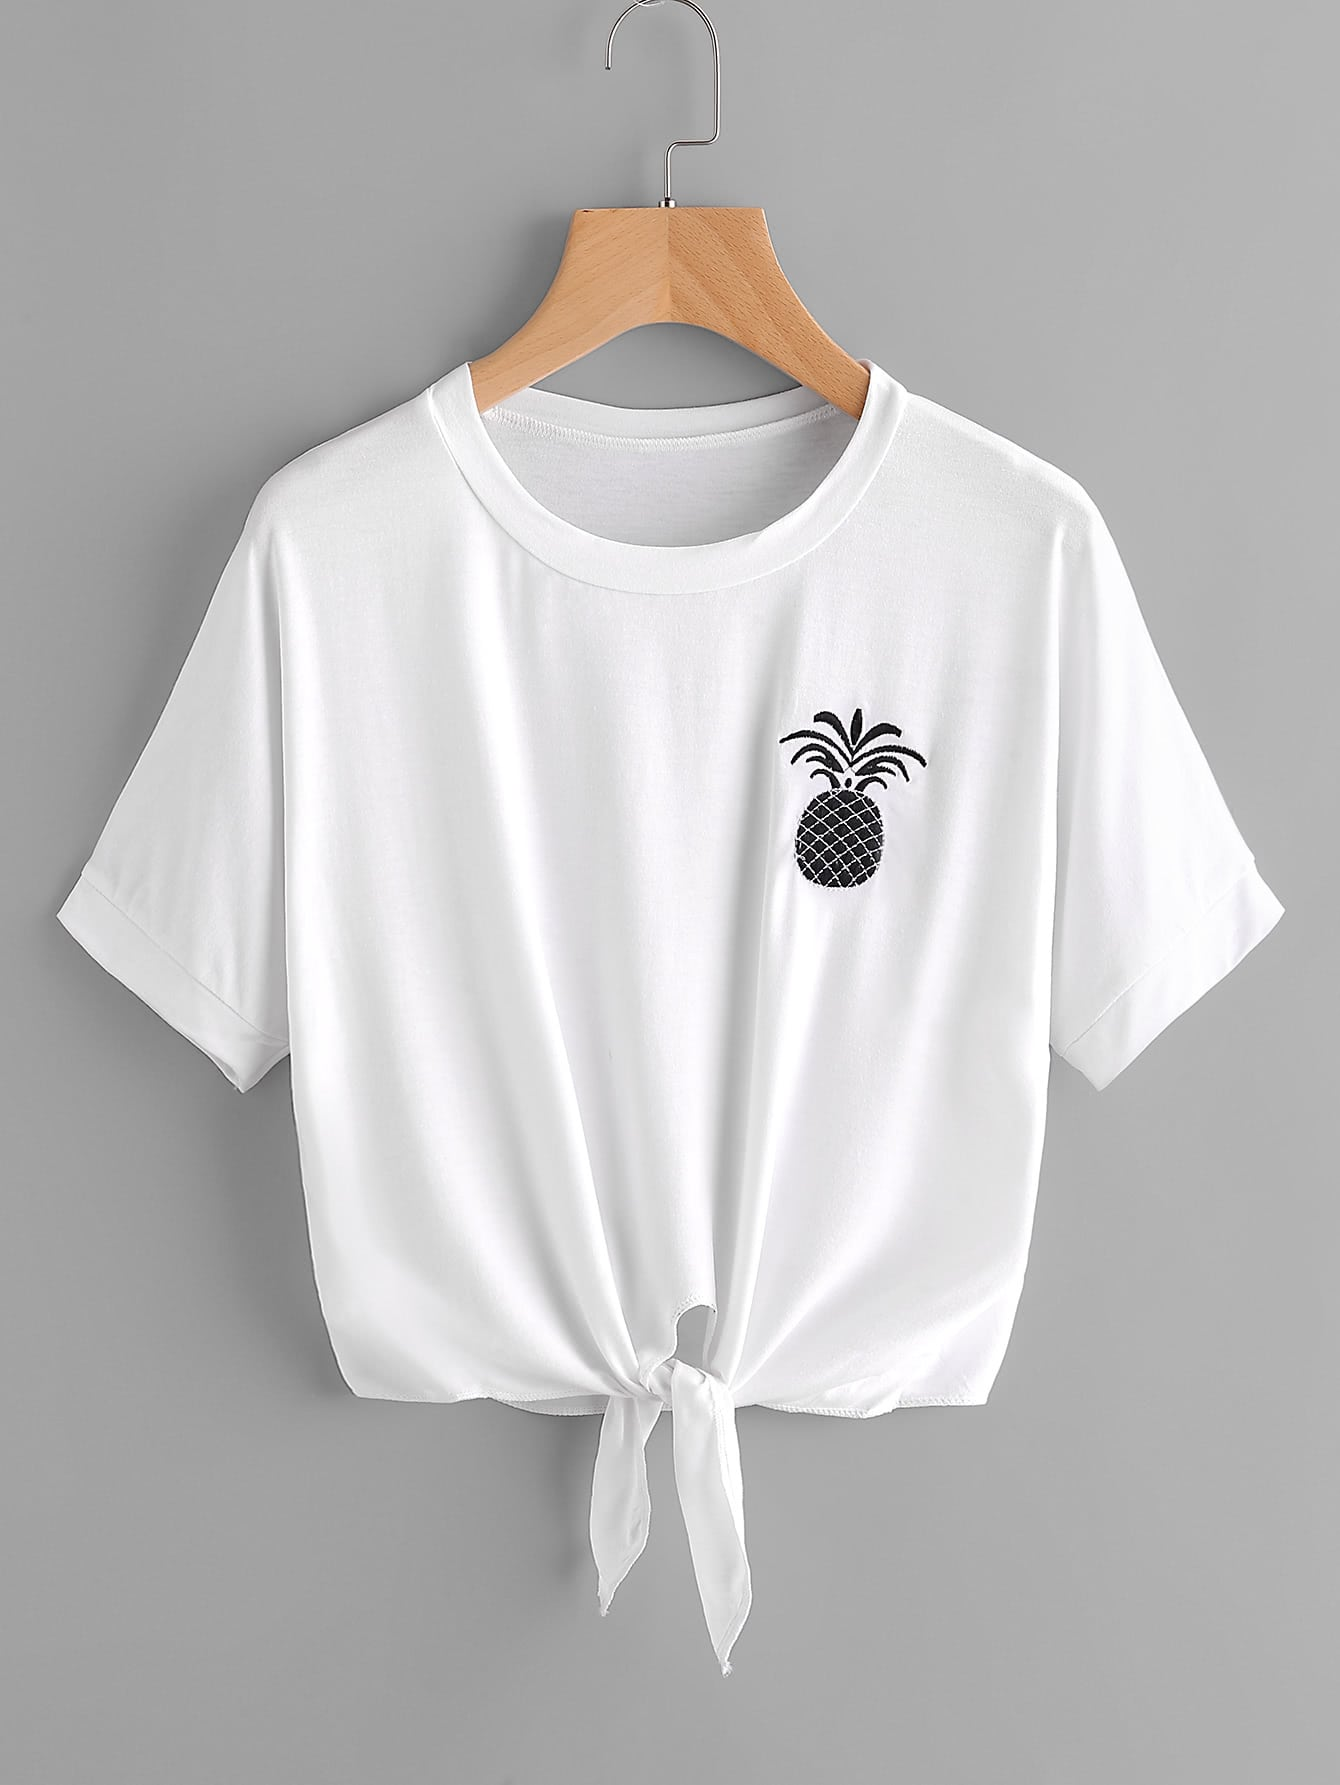 Pineapple Embroidered Tie Front Tee tee170512003